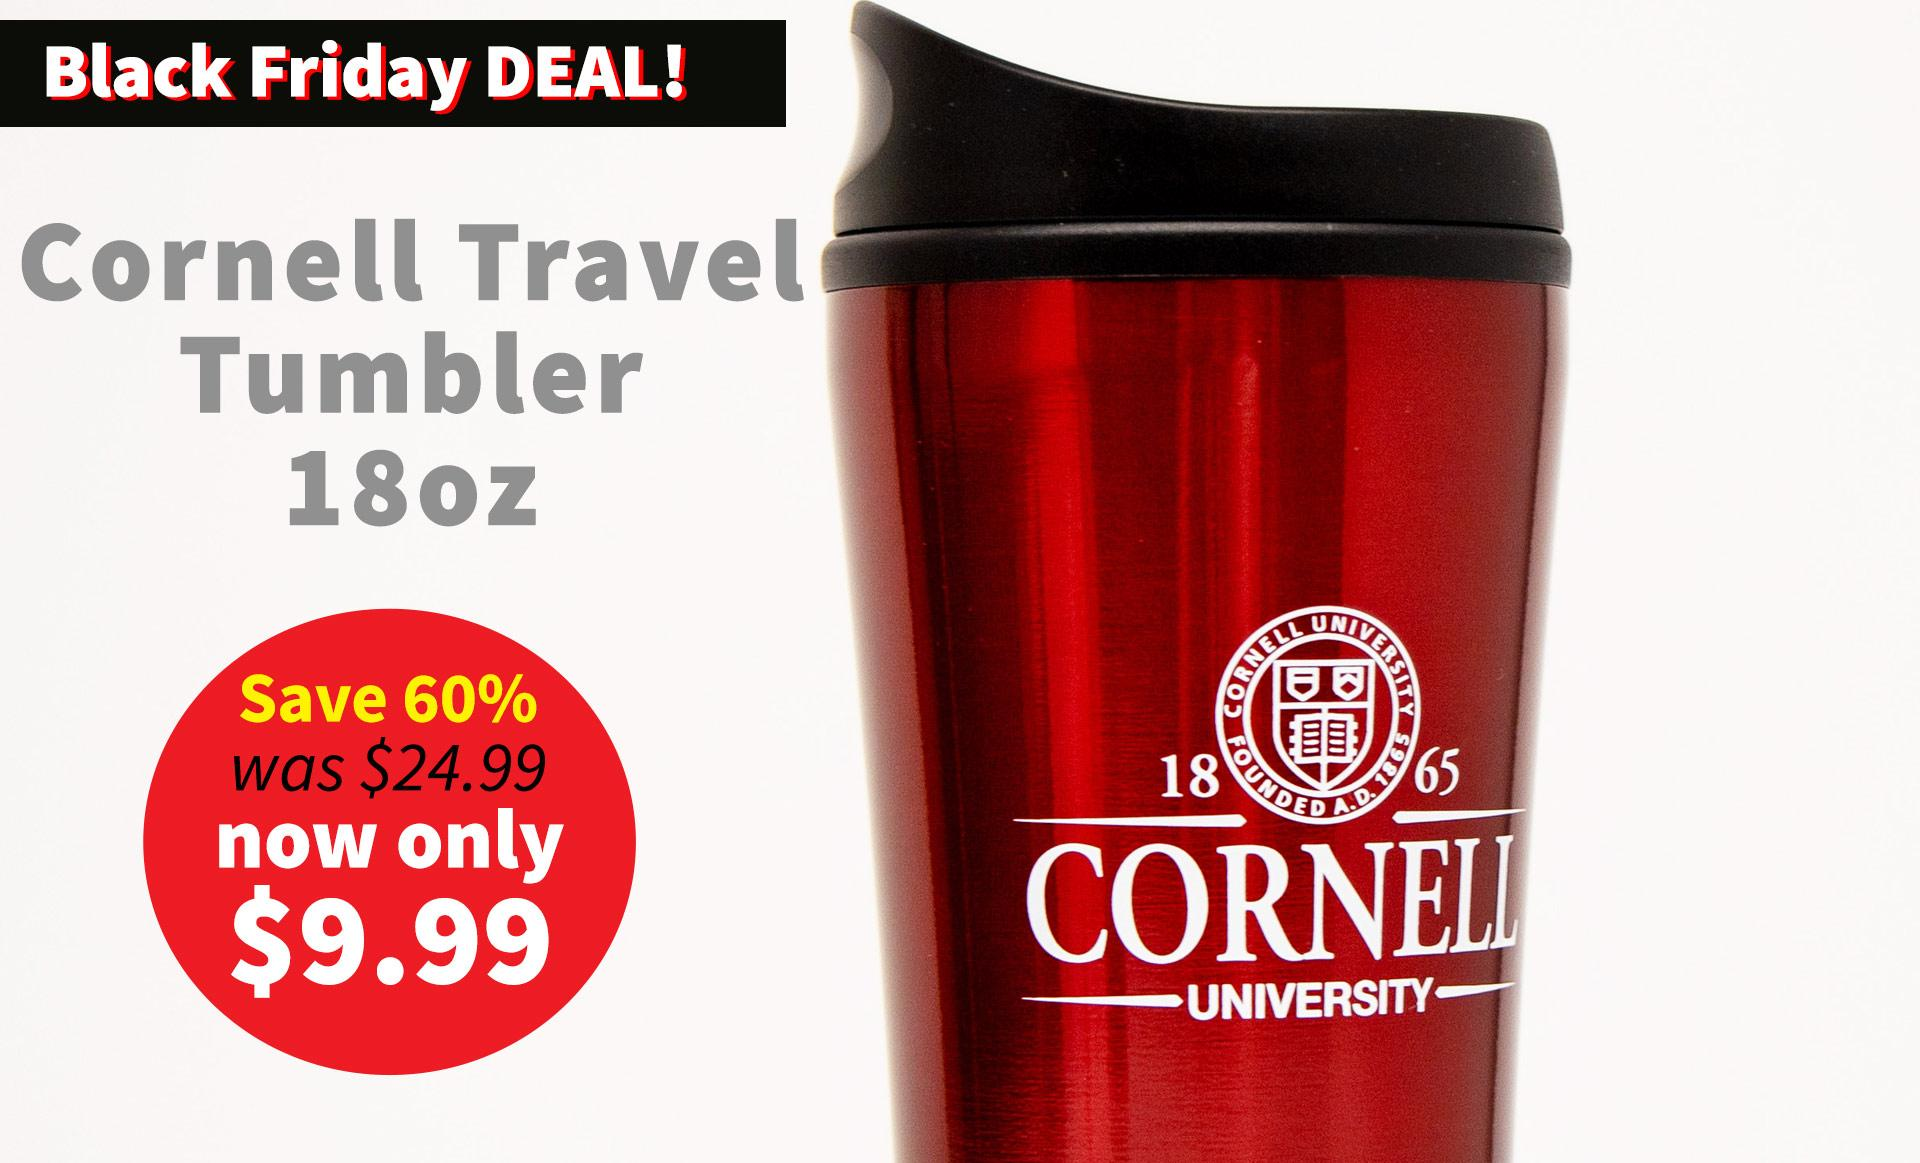 Cornell Travel Tumbler 18ox - Now $9.99